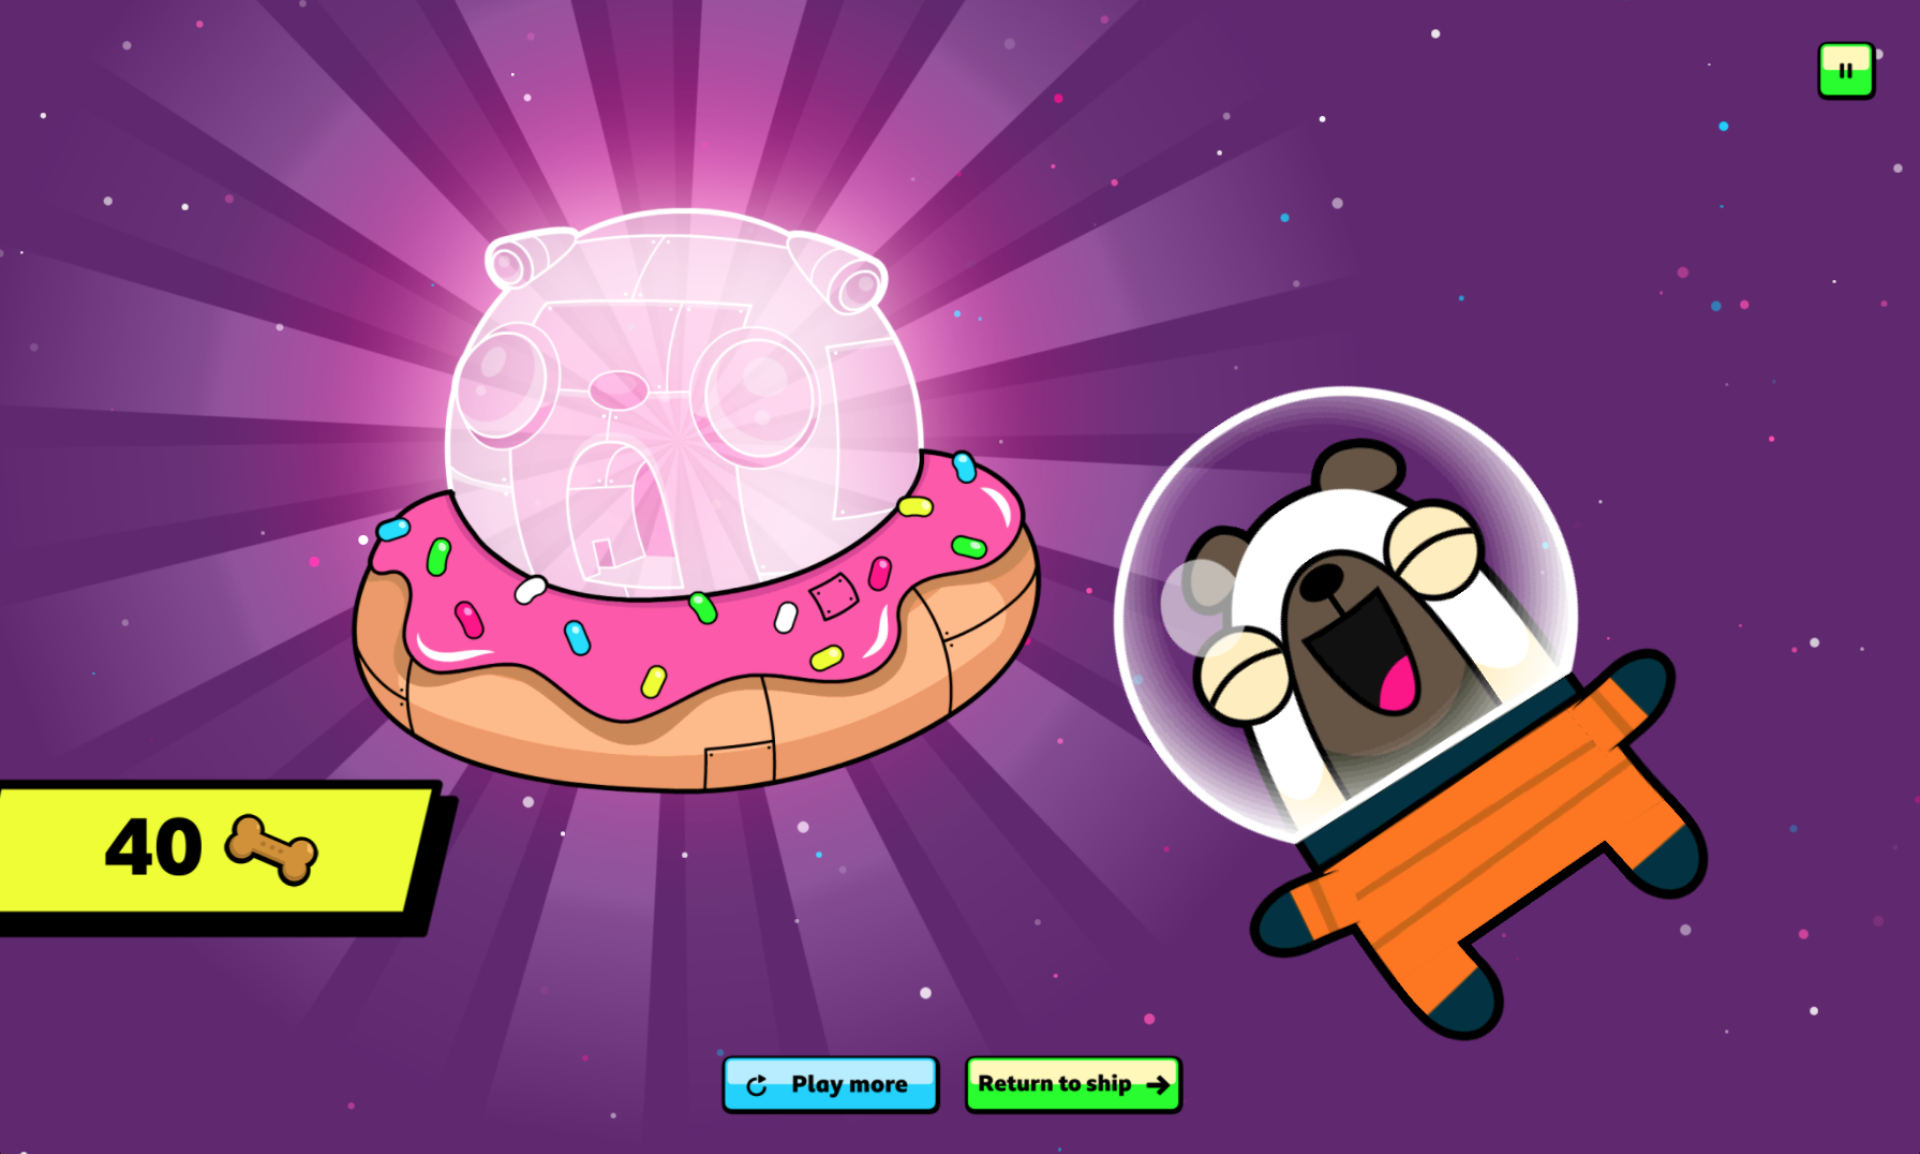 Donut ring reward